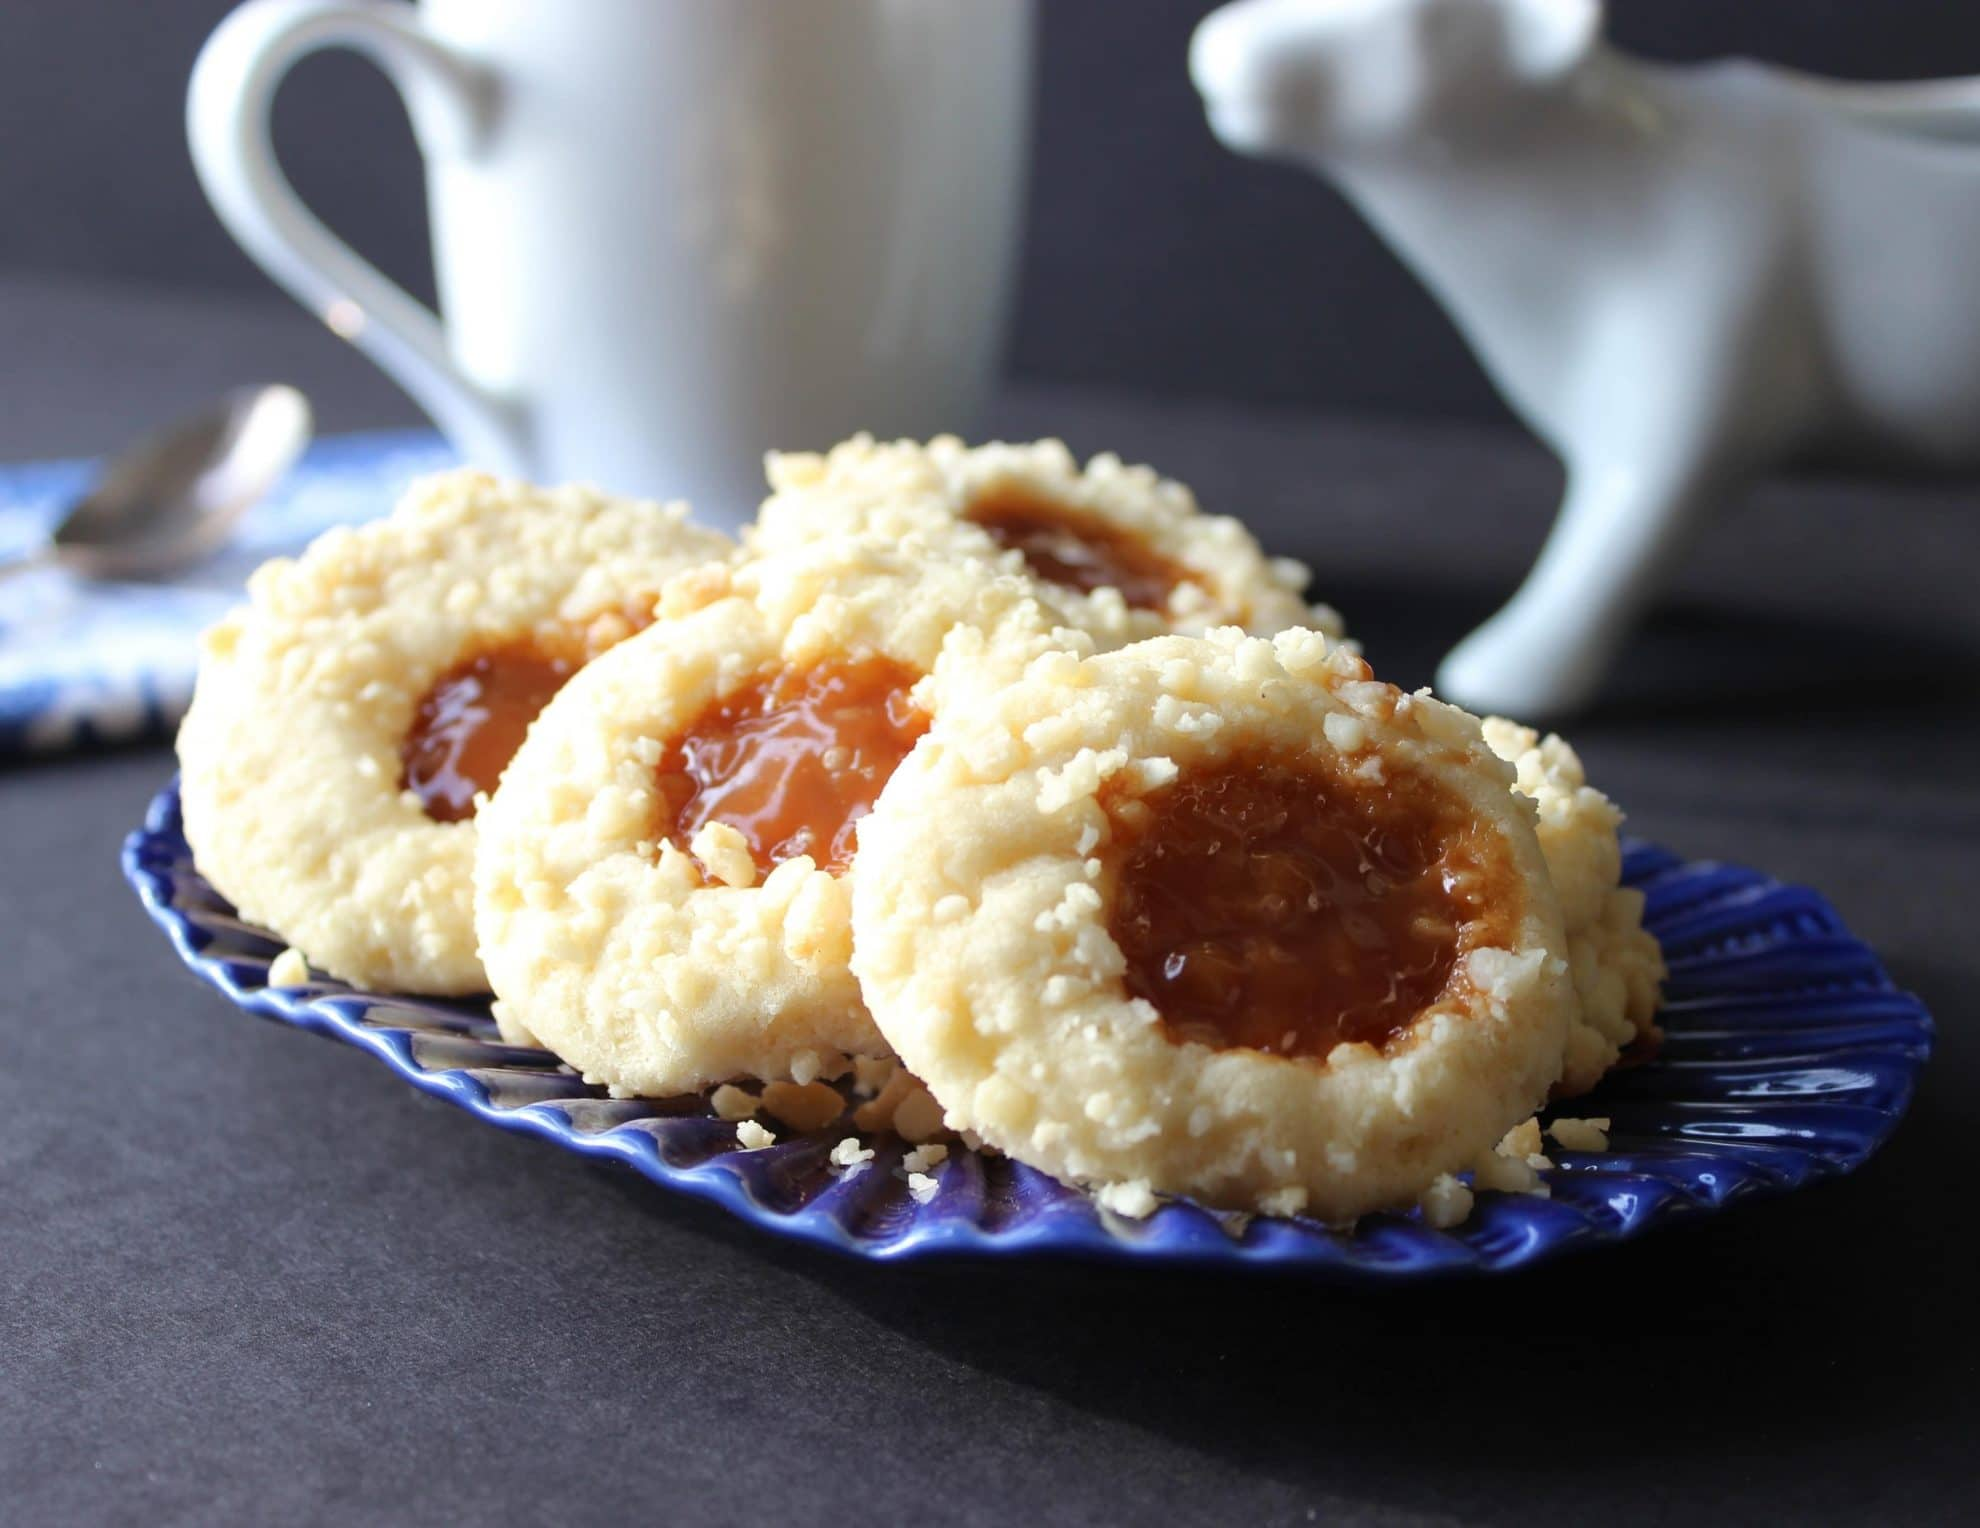 Macadamia Butter and Caramel Cookies